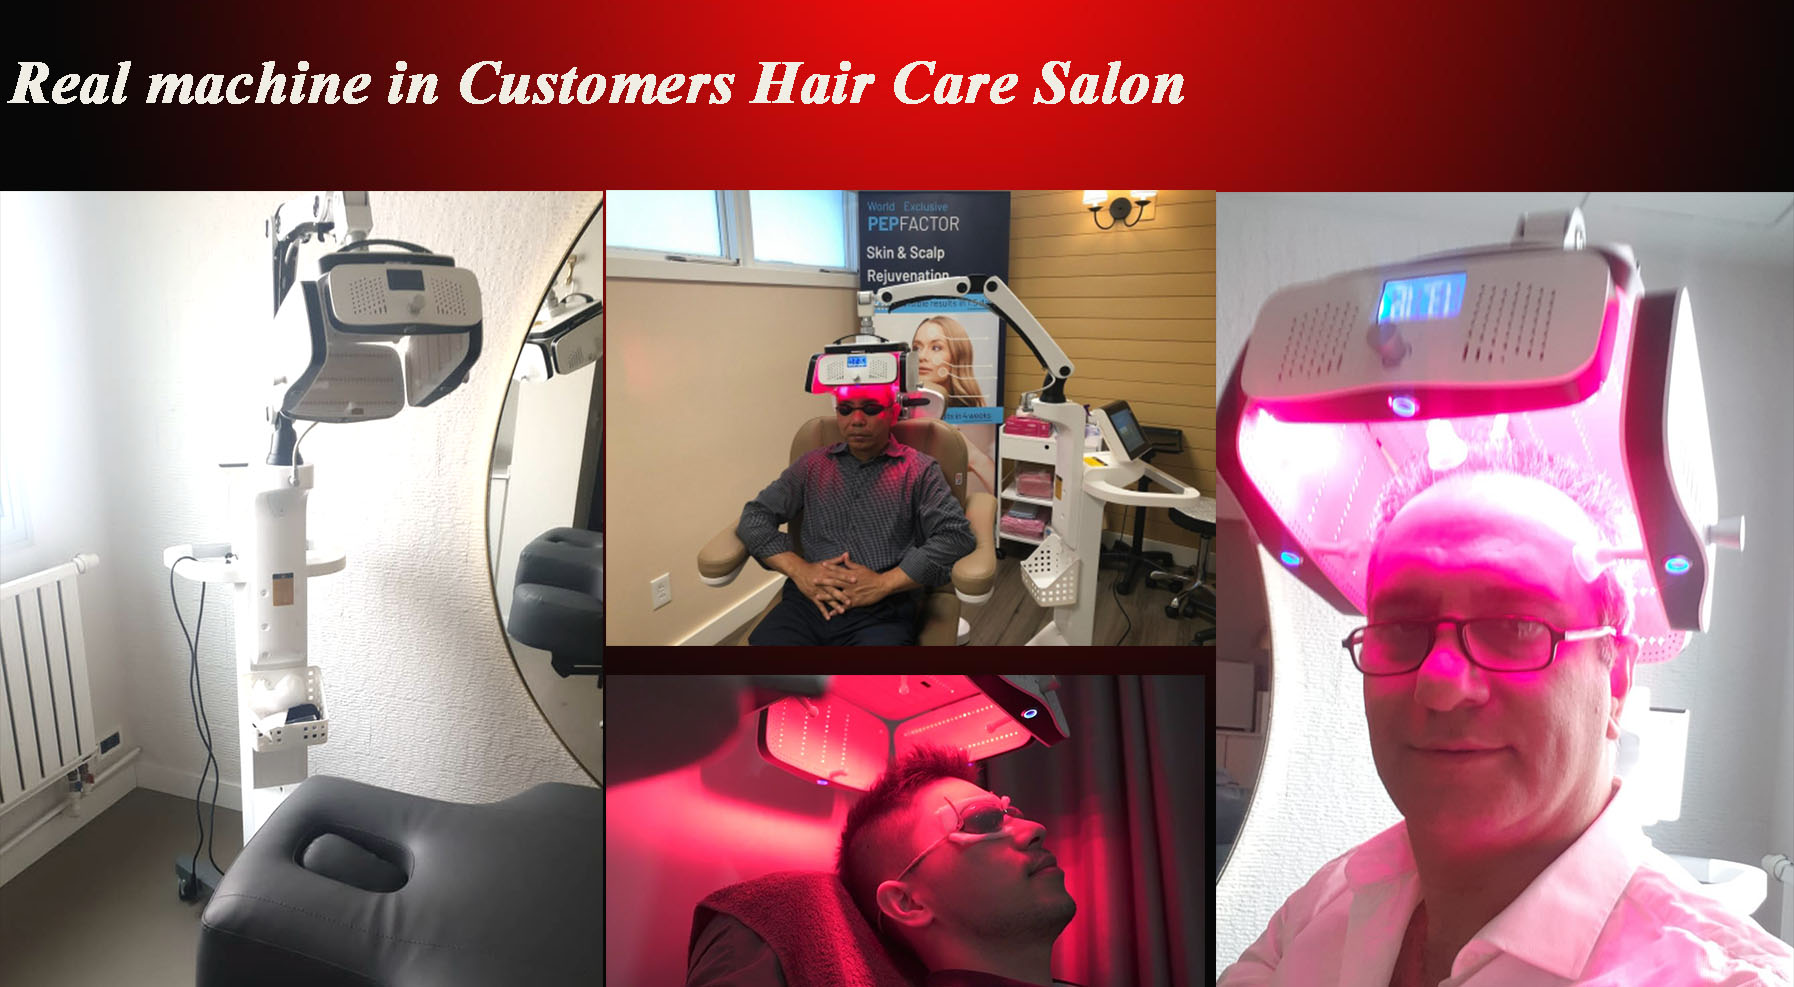 Laser Light Therapy Machine For Hair Regrowth KN-8000A Manufacturers, Laser Light Therapy Machine For Hair Regrowth KN-8000A Factory, Supply Laser Light Therapy Machine For Hair Regrowth KN-8000A